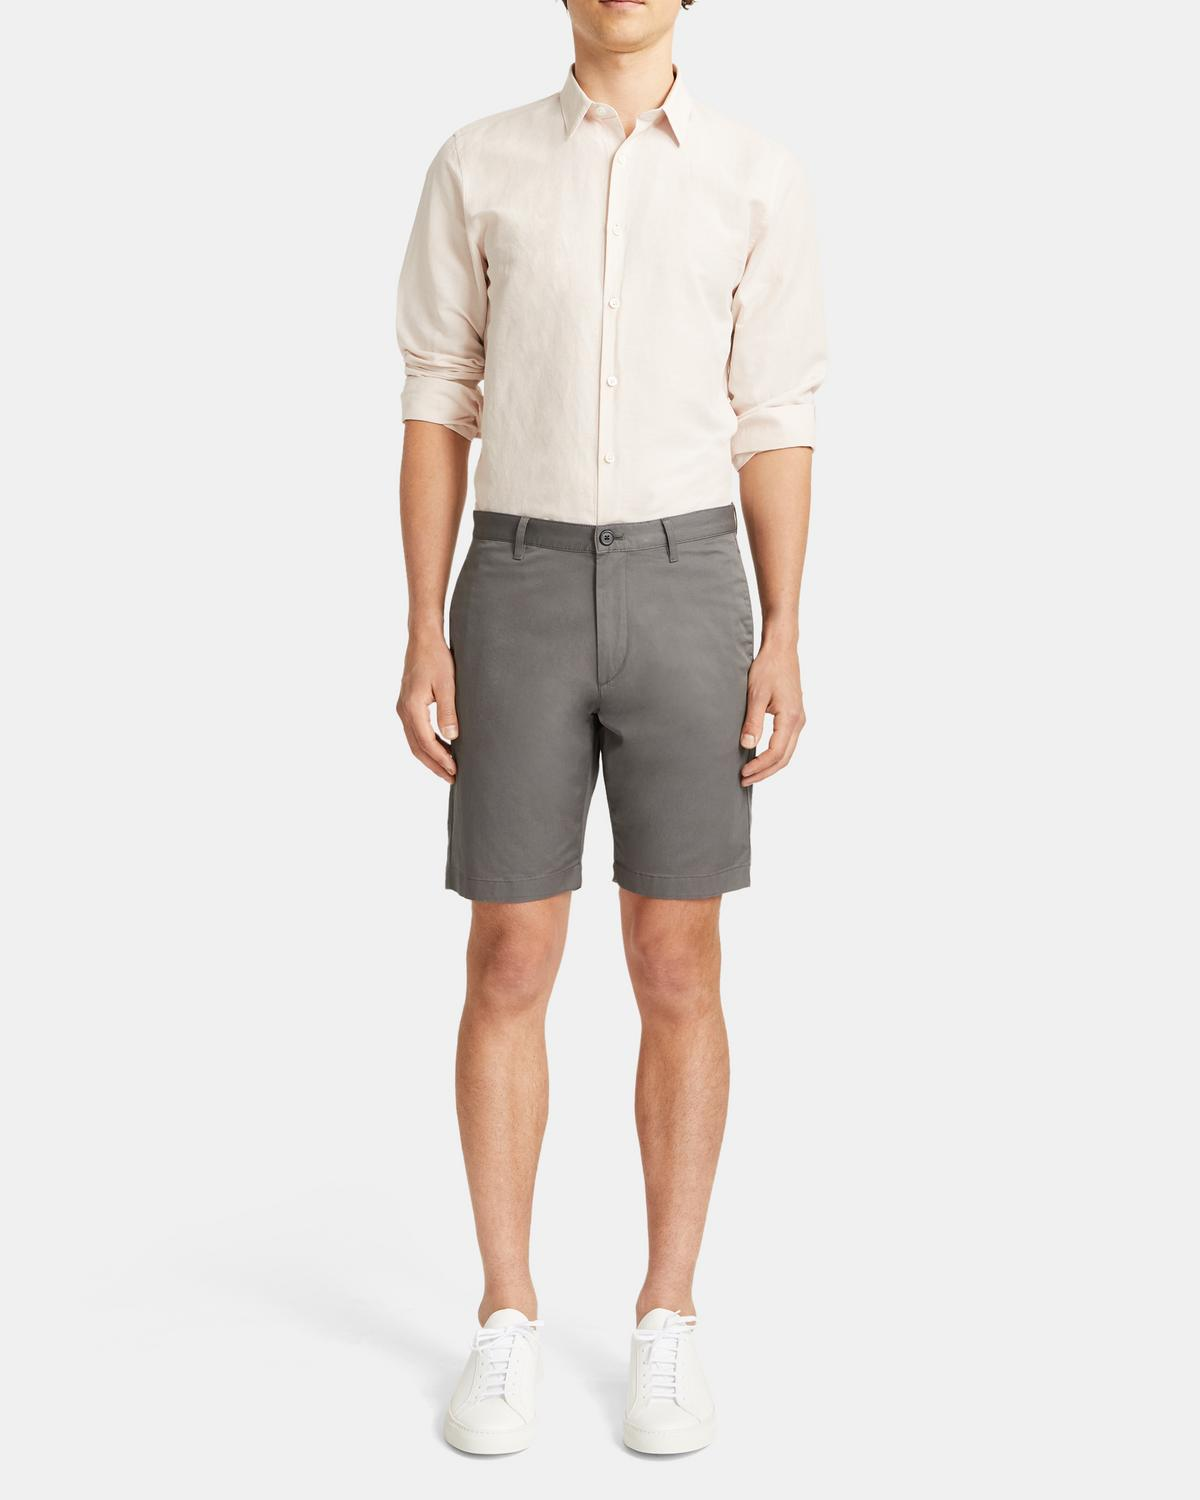 Zaine Short in Stretch Cotton Twill 0 - click to view larger image